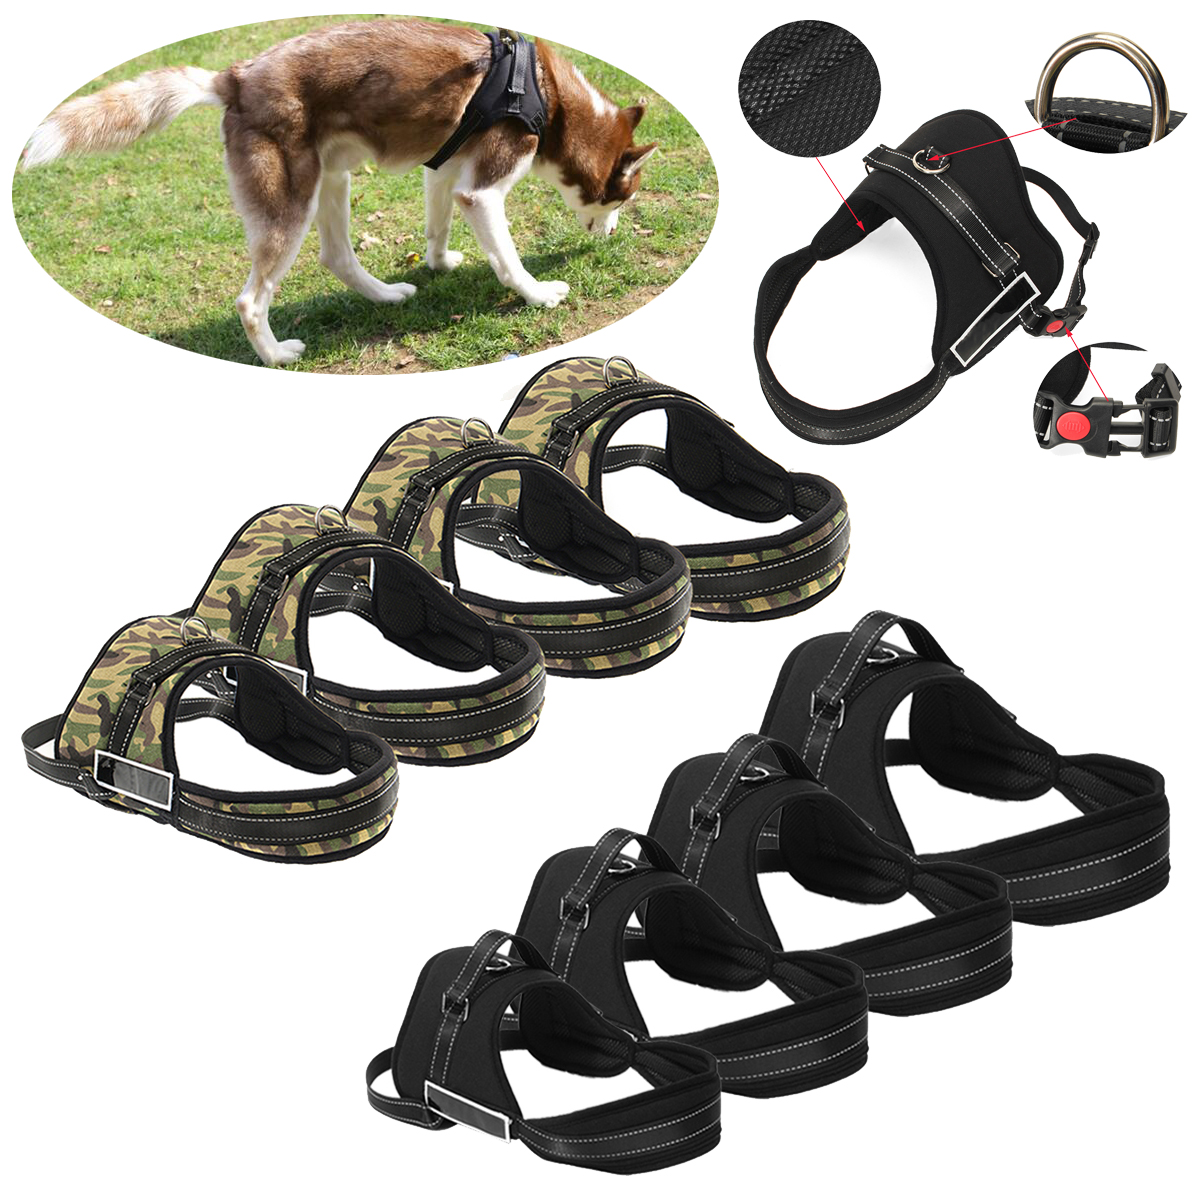 Control Dog Pulling Harness Adjustable Support Comfy Pe